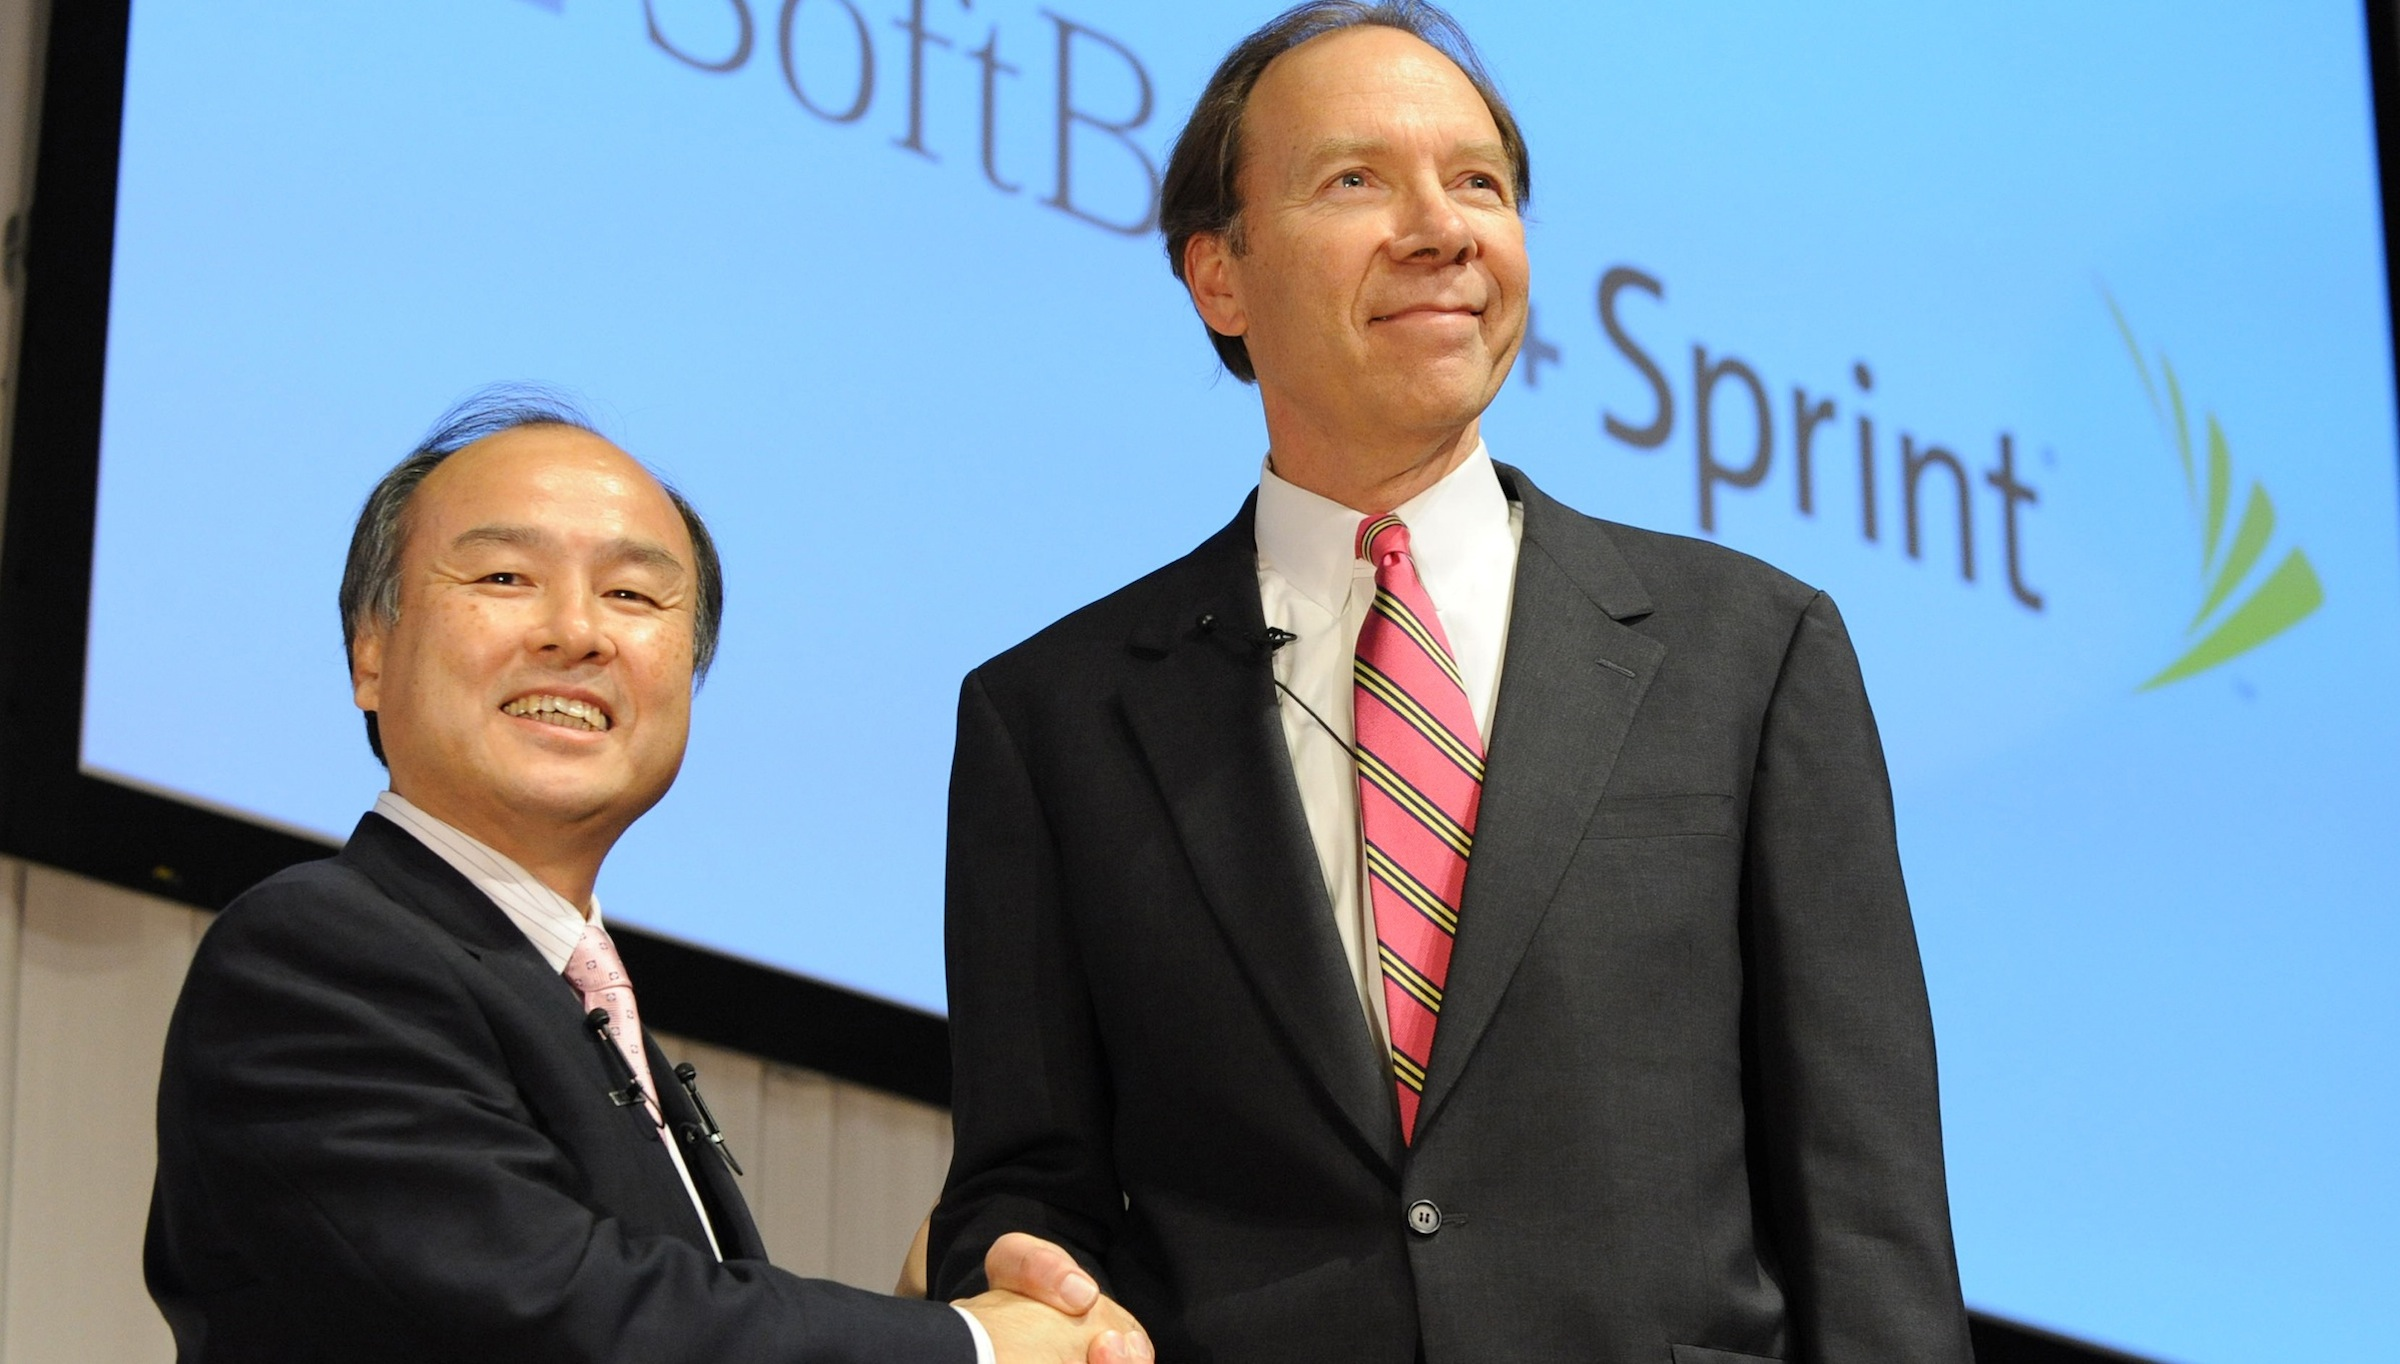 FILE -In this Oct. 15, 2012, file photo, Son Masayoshi, left,  president of Softbank Corp. shakes hands with Dan Hesse, CEO of Sprind Nextel Corp. during a joint news conference in Tokyo. Subscriber trends are turning south again for Sprint Nextel as it struggles to compete with Verizon Wireless, the industry leader.  The country's No. 3 wireless carrier says Thursday, Oct. 25, 2012, it lost overall subscribers for the first time in two and a half years in the third quarter, as customers gave up on the moribund Nextel network and the company failed to sign up enough of them on the Sprint network.   (The Yomiuri Shimbun via AP Images )